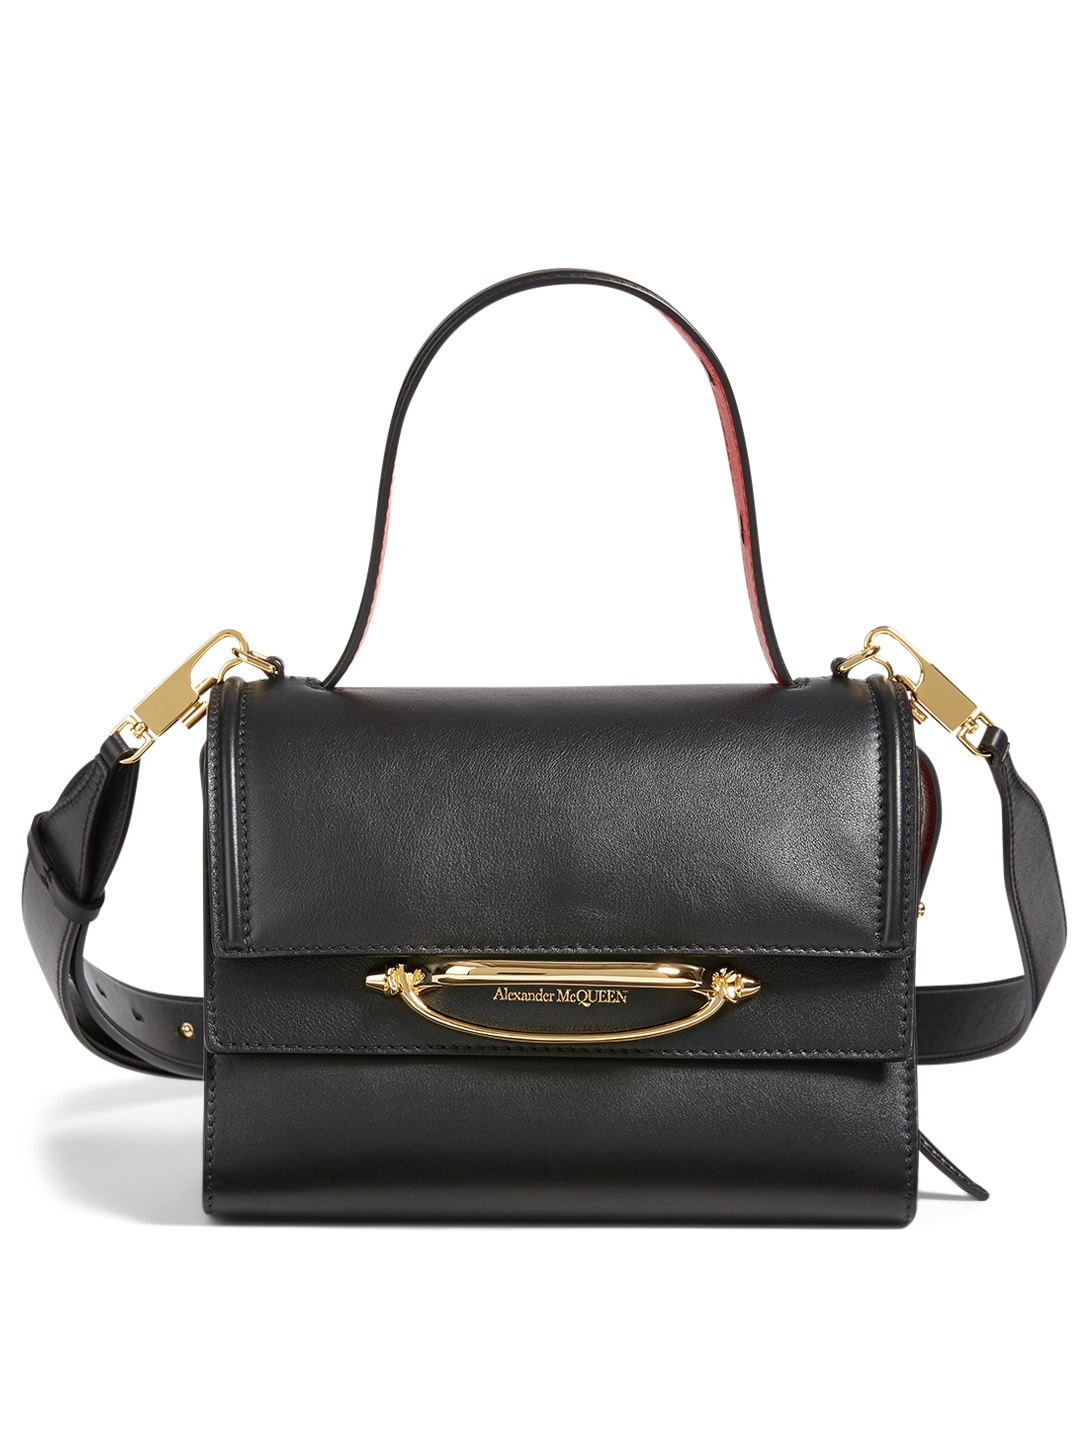 ALEXANDER MCQUEEN Small The Story Leather Bag Women's Black